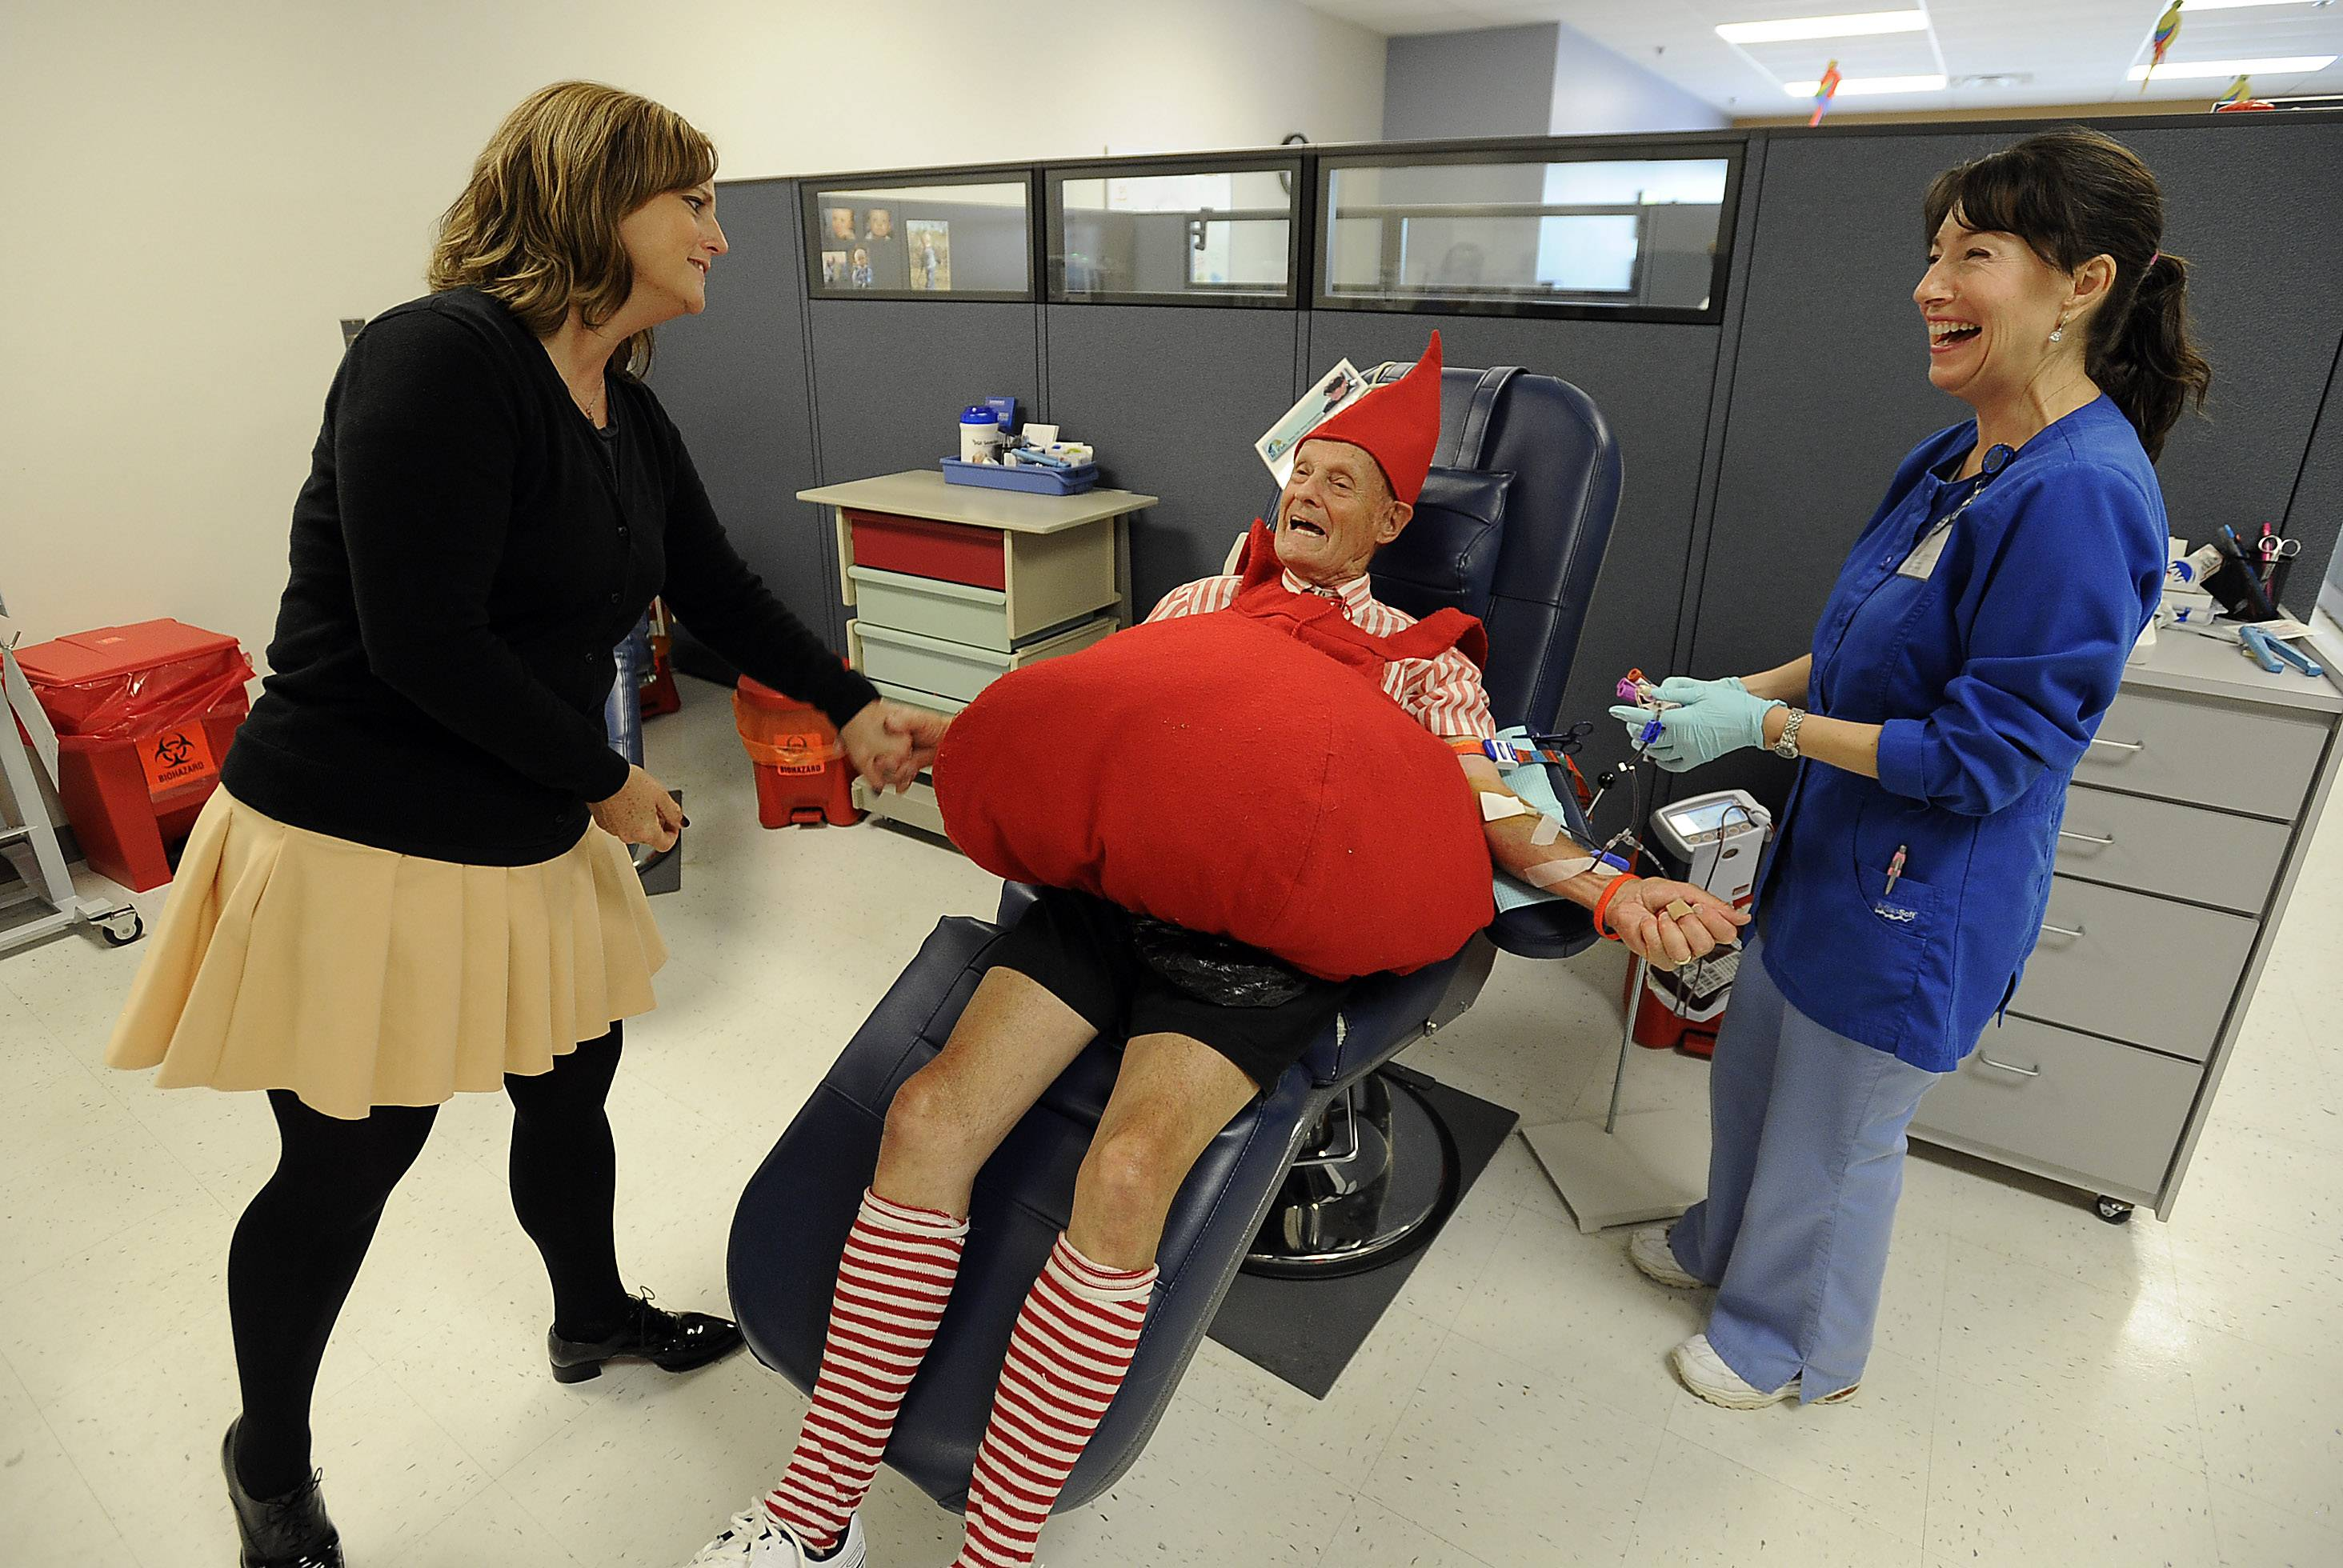 Palatine resident George Serena, 86, jokes with Geri Venable, director of donor services at LifeSource, left, and phlebotomist Jennifer Sava while donating his 151st pint of blood at LifeSource in Arlington Heights on Tuesday.